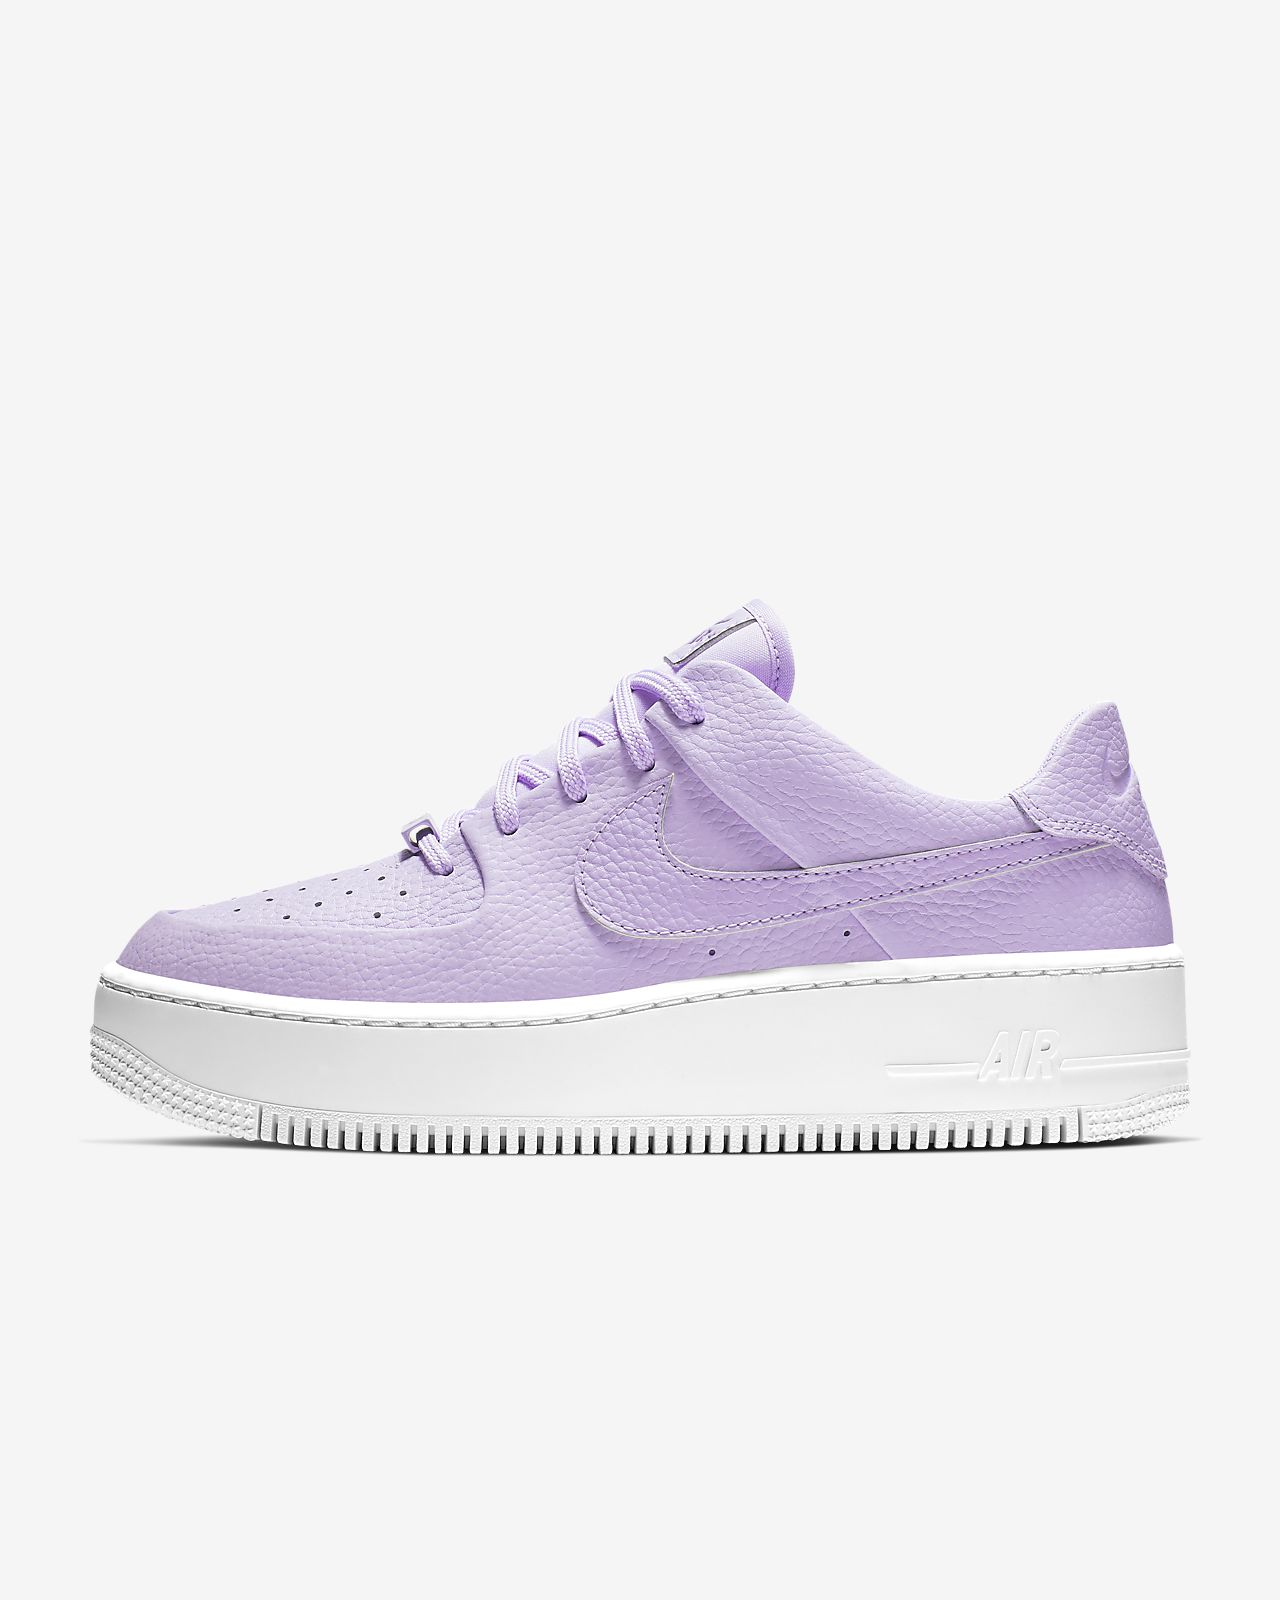 official photos c9469 23953 ... Chaussure Nike Air Force 1 Sage Low pour Femme